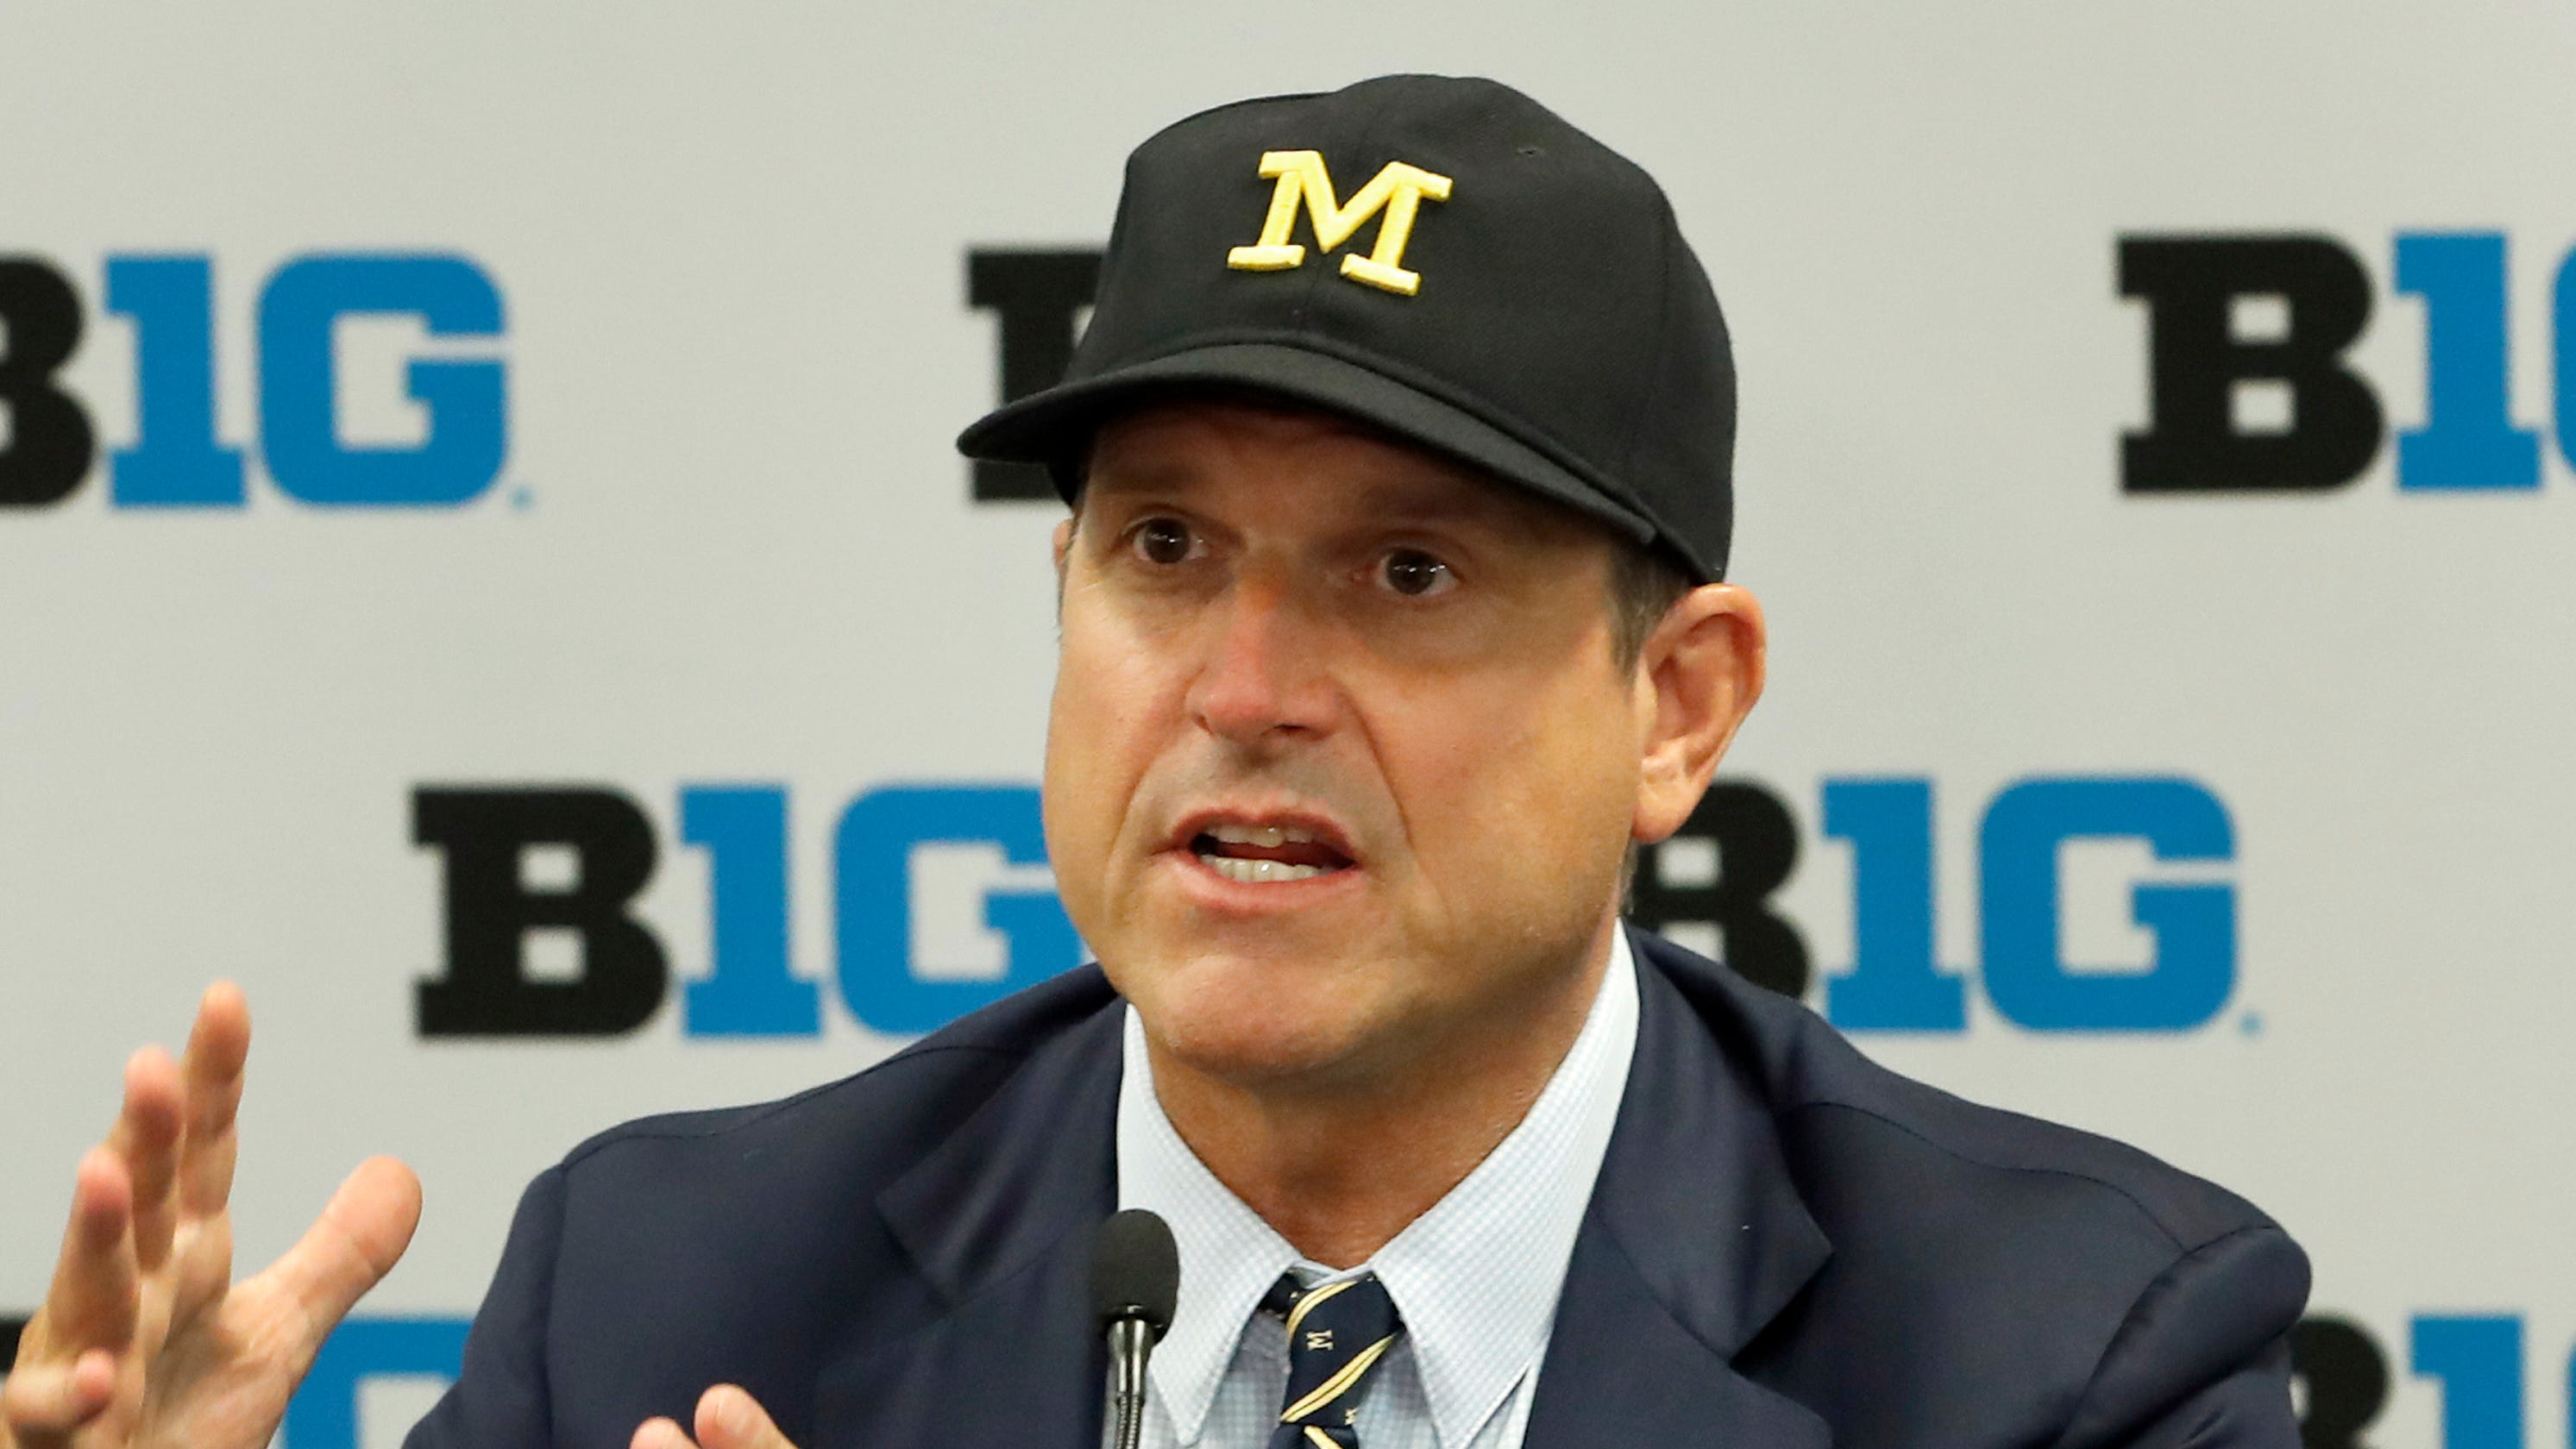 The only Big Ten ranking that puts Jim Harbaugh behind Mike Locksley